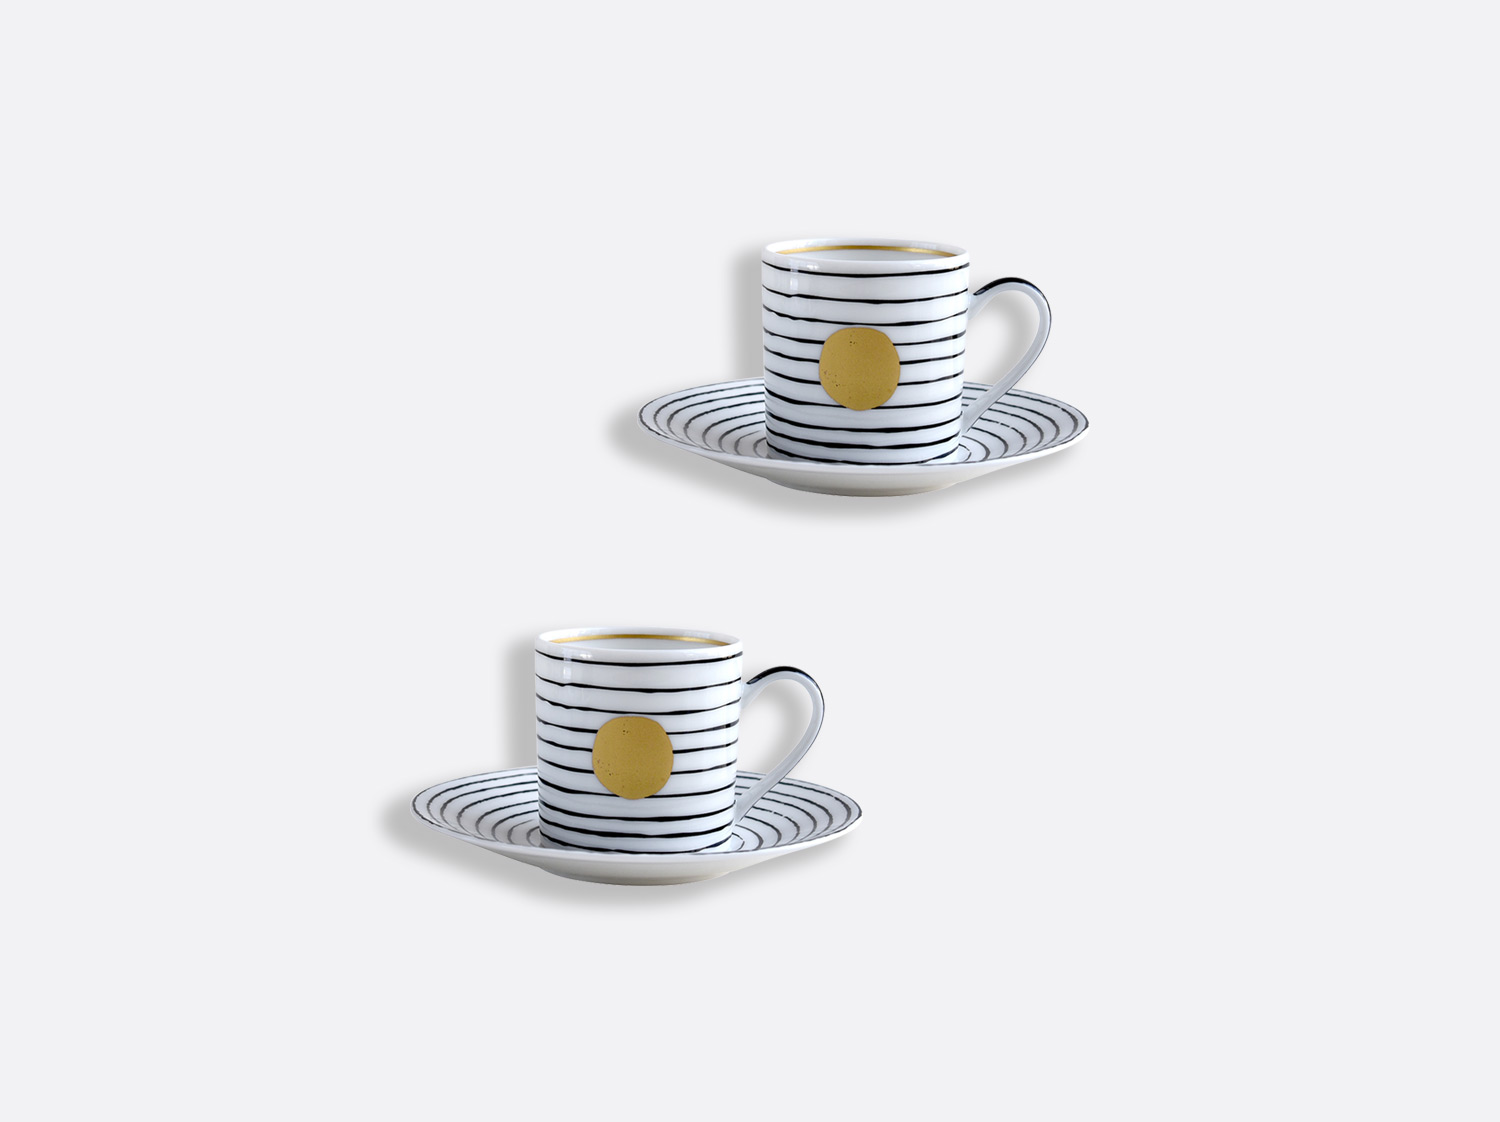 China Espresso cup and saucer gift box - 2.8 Oz - Set of 2 of the collection Aboro Or | Bernardaud